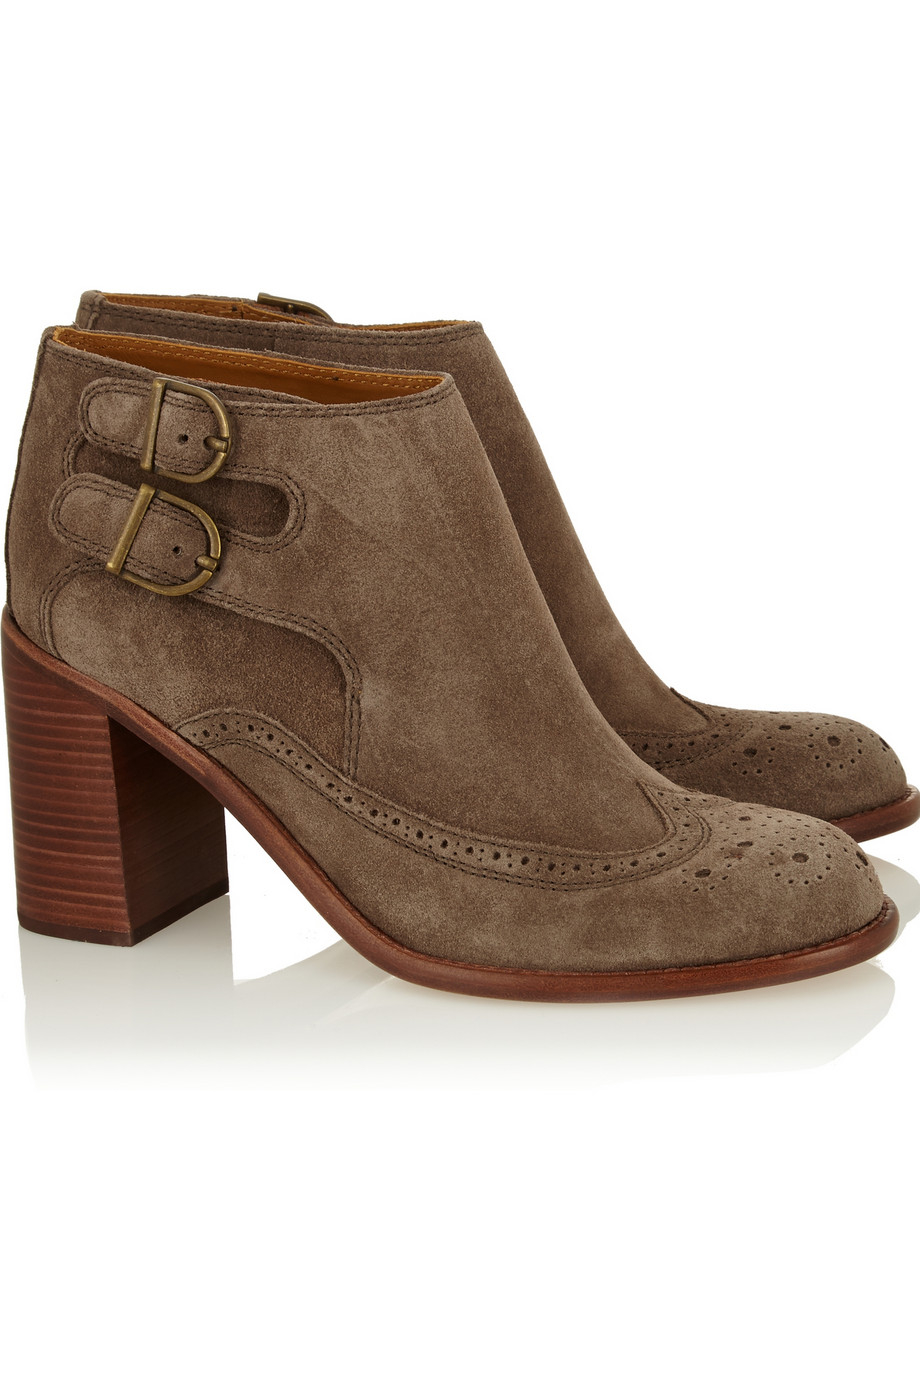 Chloé FLARAL women's Low Ankle Boots in Discount Fashion Style 7nEIv